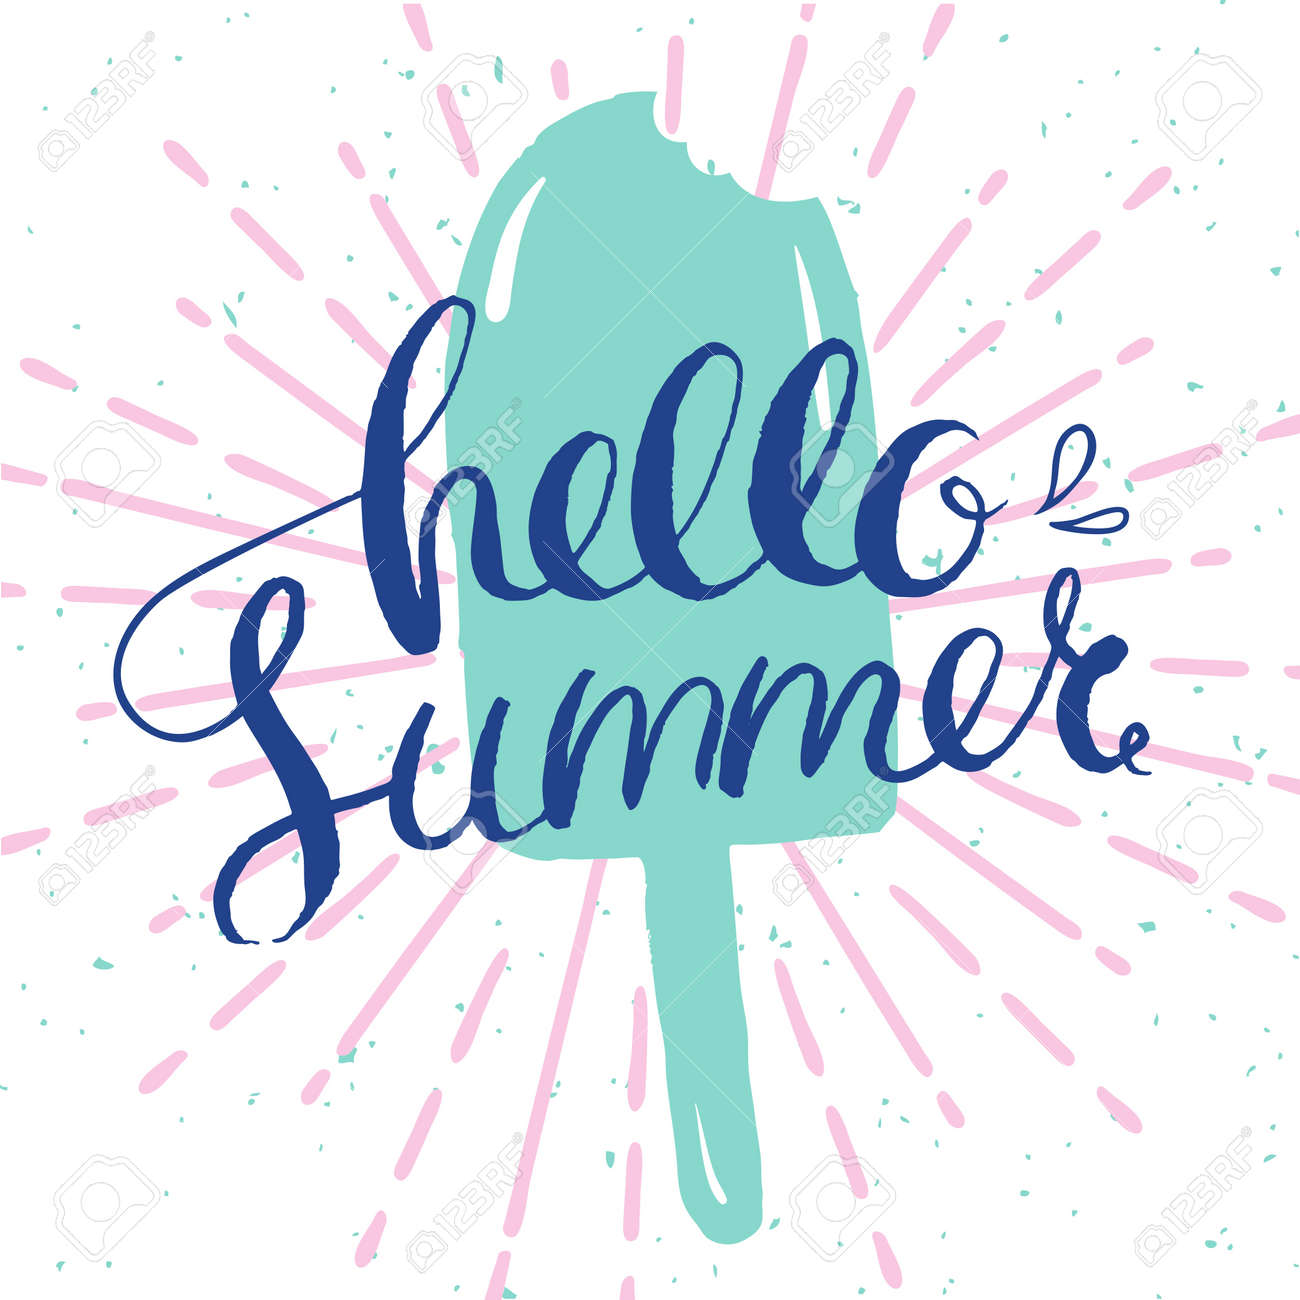 Great Hello Summer Card, Card With Ice Cream And Hand Drawn Lettering For Summer